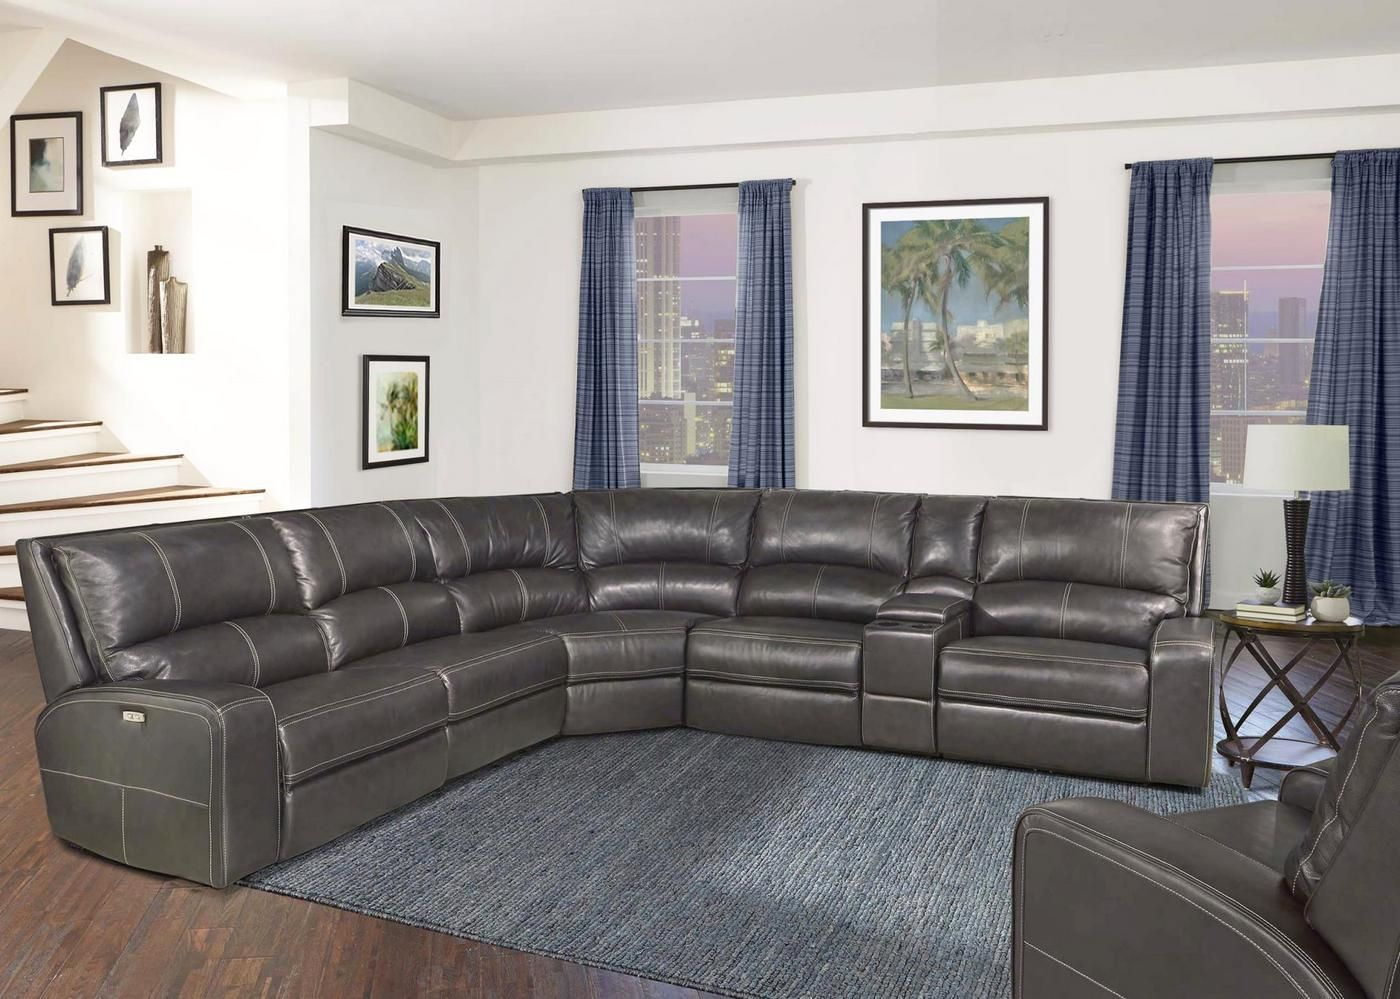 Swift Twilight Modular Leather Sectional Sofa W/ Powered Inside Armless Sectional Sofas (View 12 of 15)